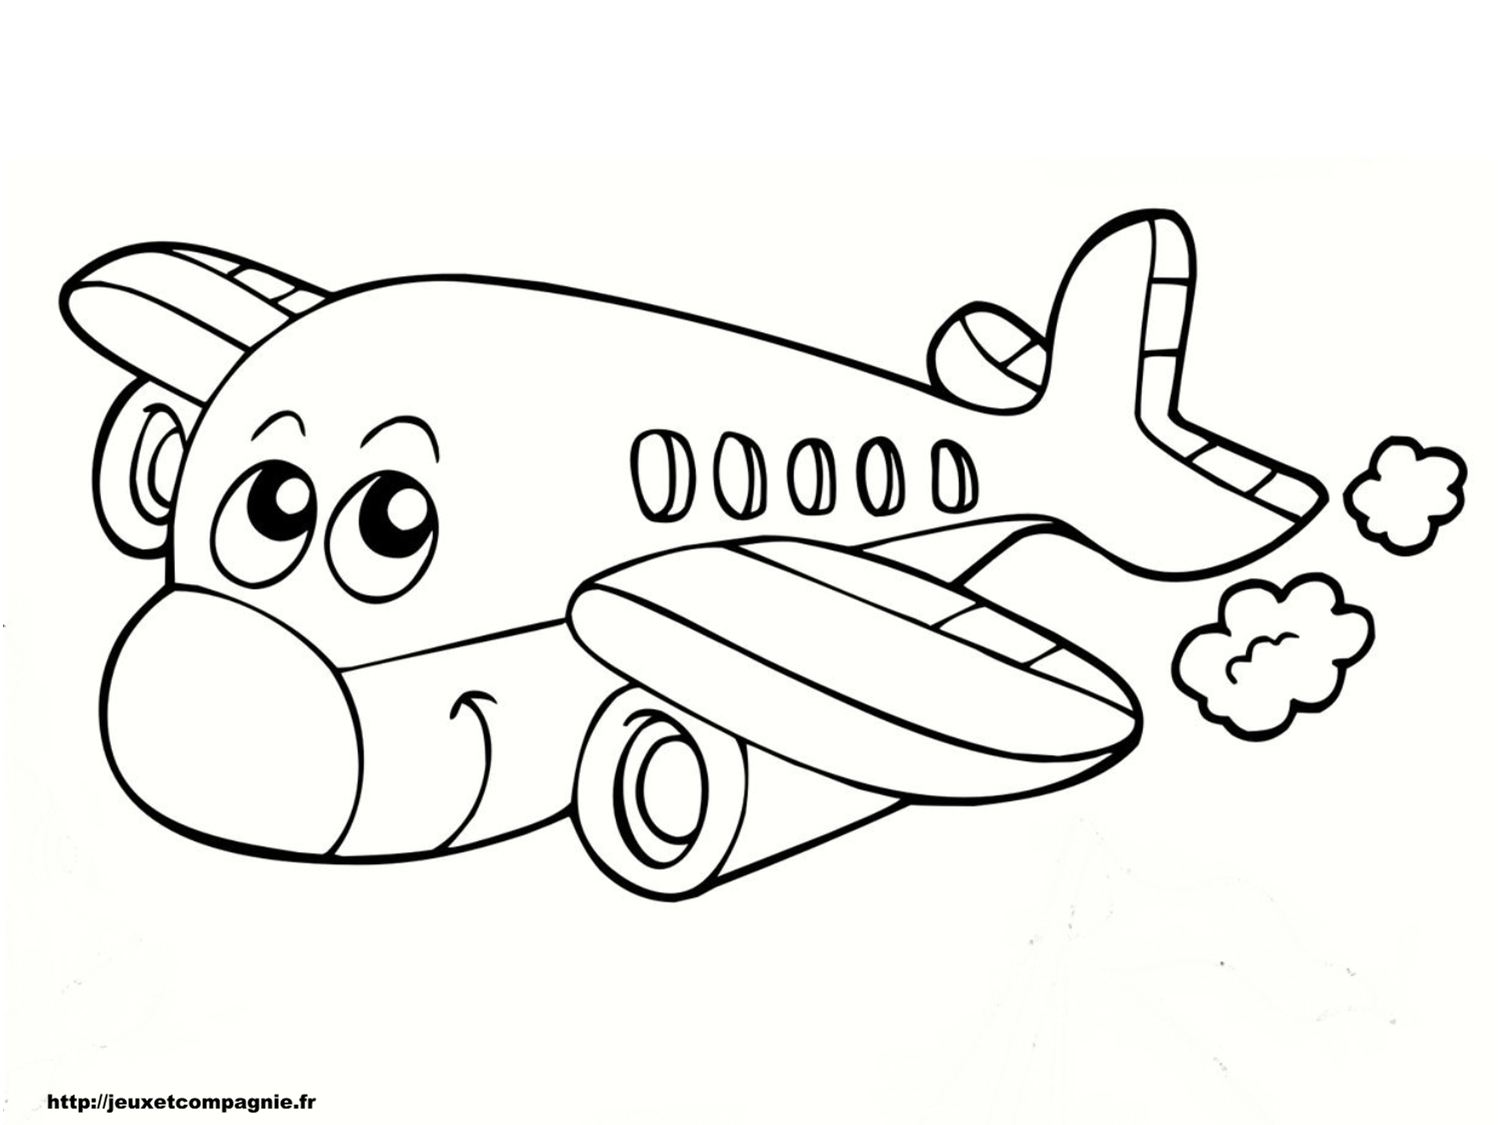 S lection de dessins de coloriage avion imprimer sur - Dessin de avion ...